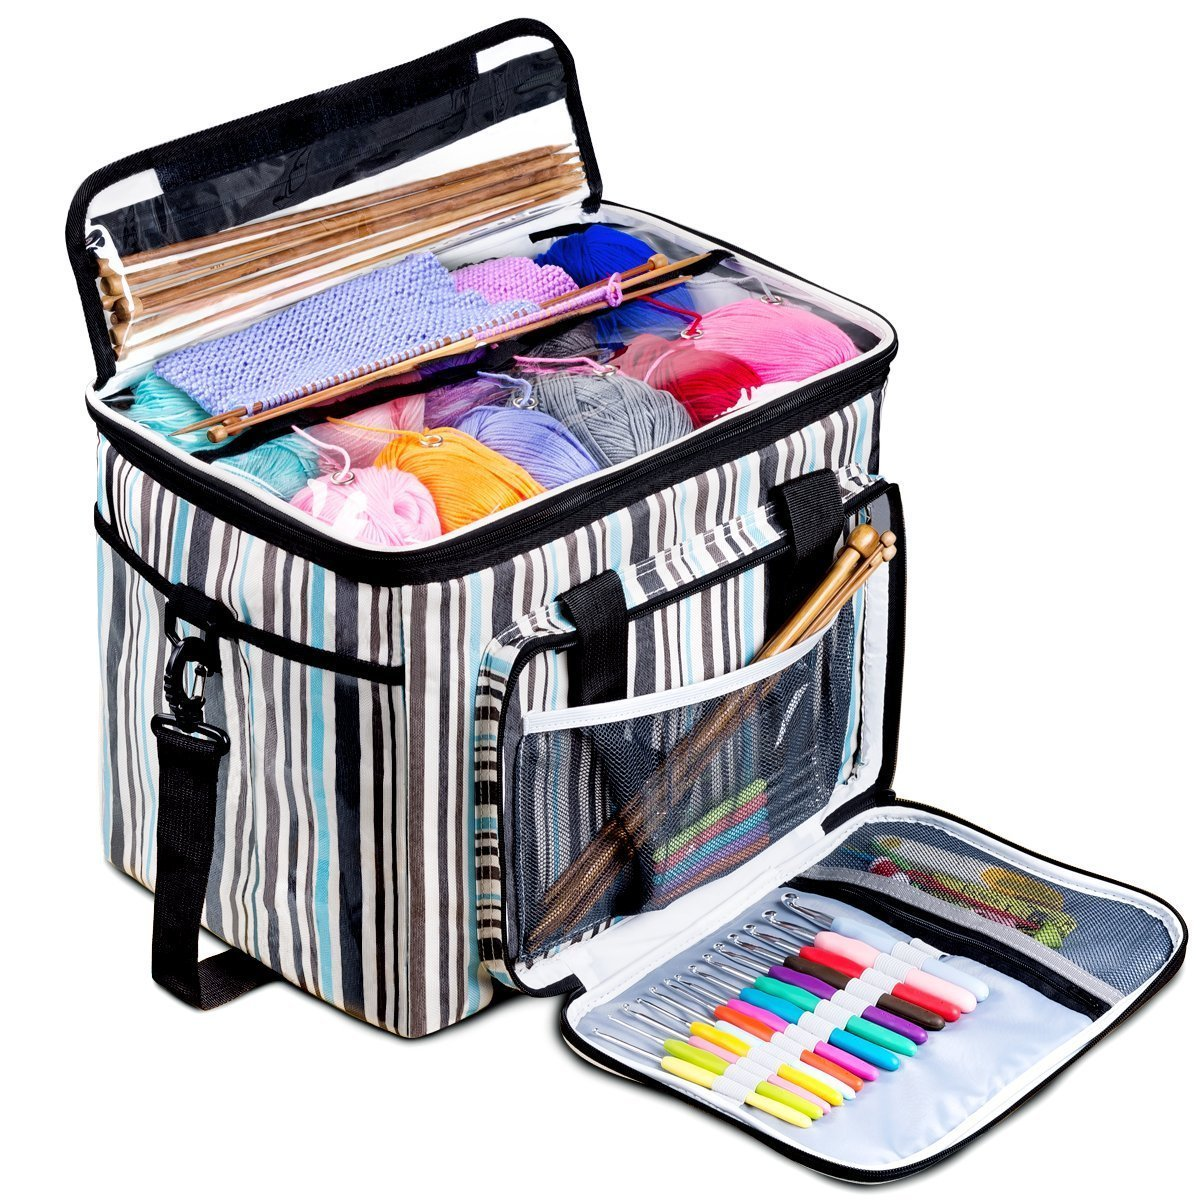 BONTIME Premium Yarn Storage Bag - Portable & Water-Resistant Knitting Bag for Ultimate Organization,Pockets for Crochet Hooks and Needles and Slits on Top to Protect Yarn,Lucky Clover Print CTHE2019